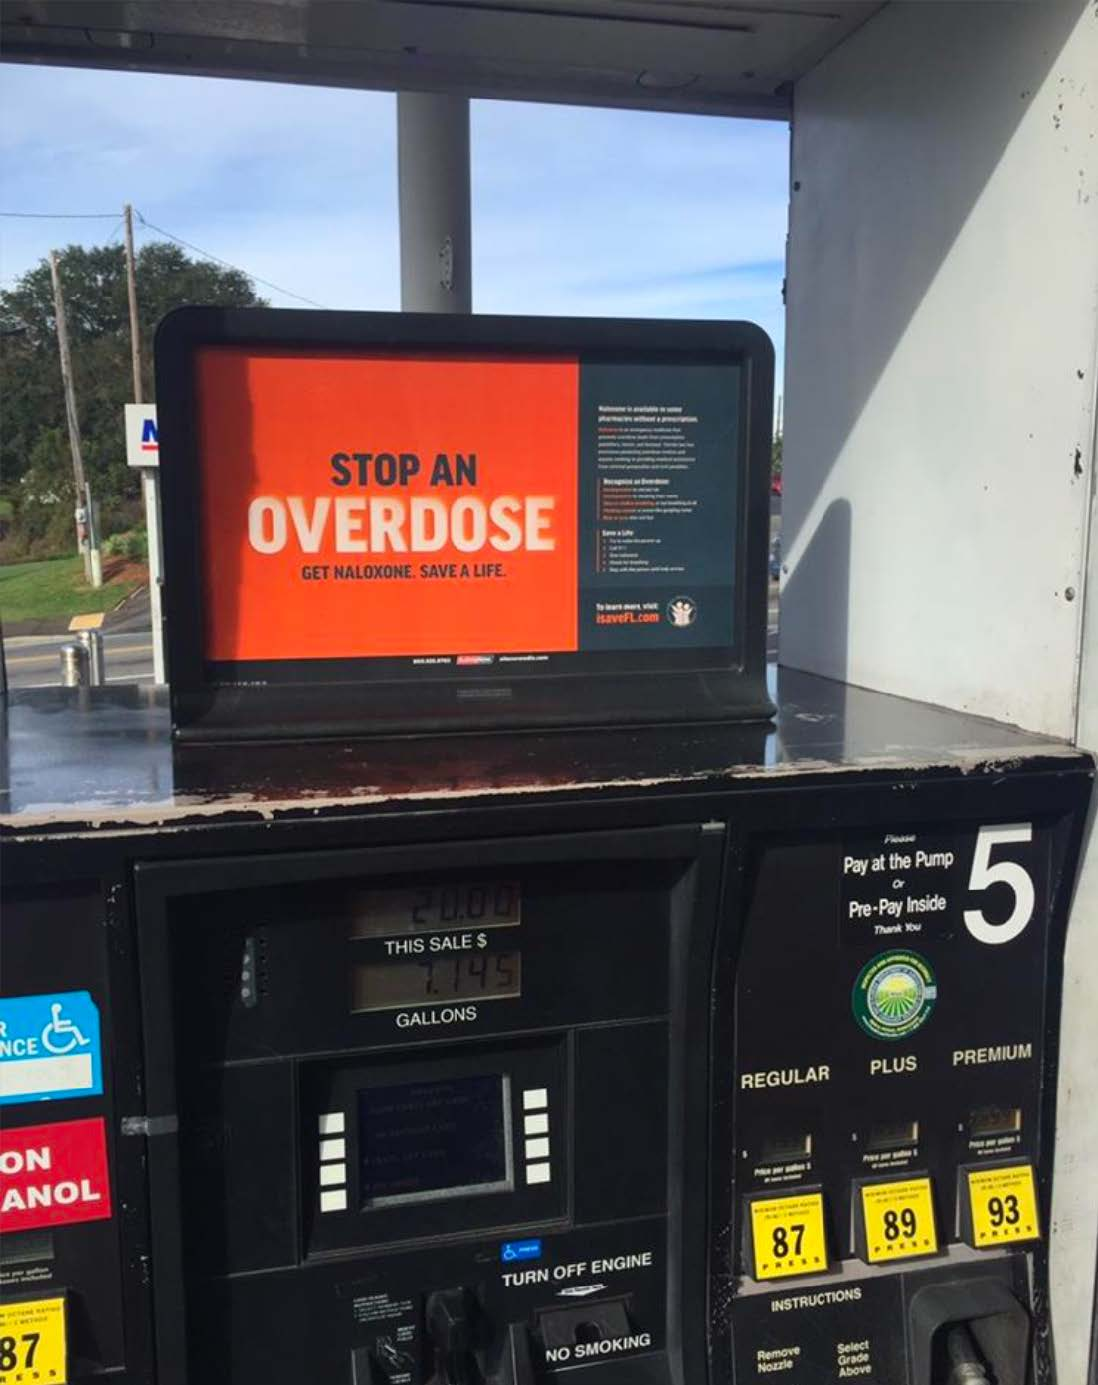 Gas Station Advert - Stop an Overdose Get Naloxone